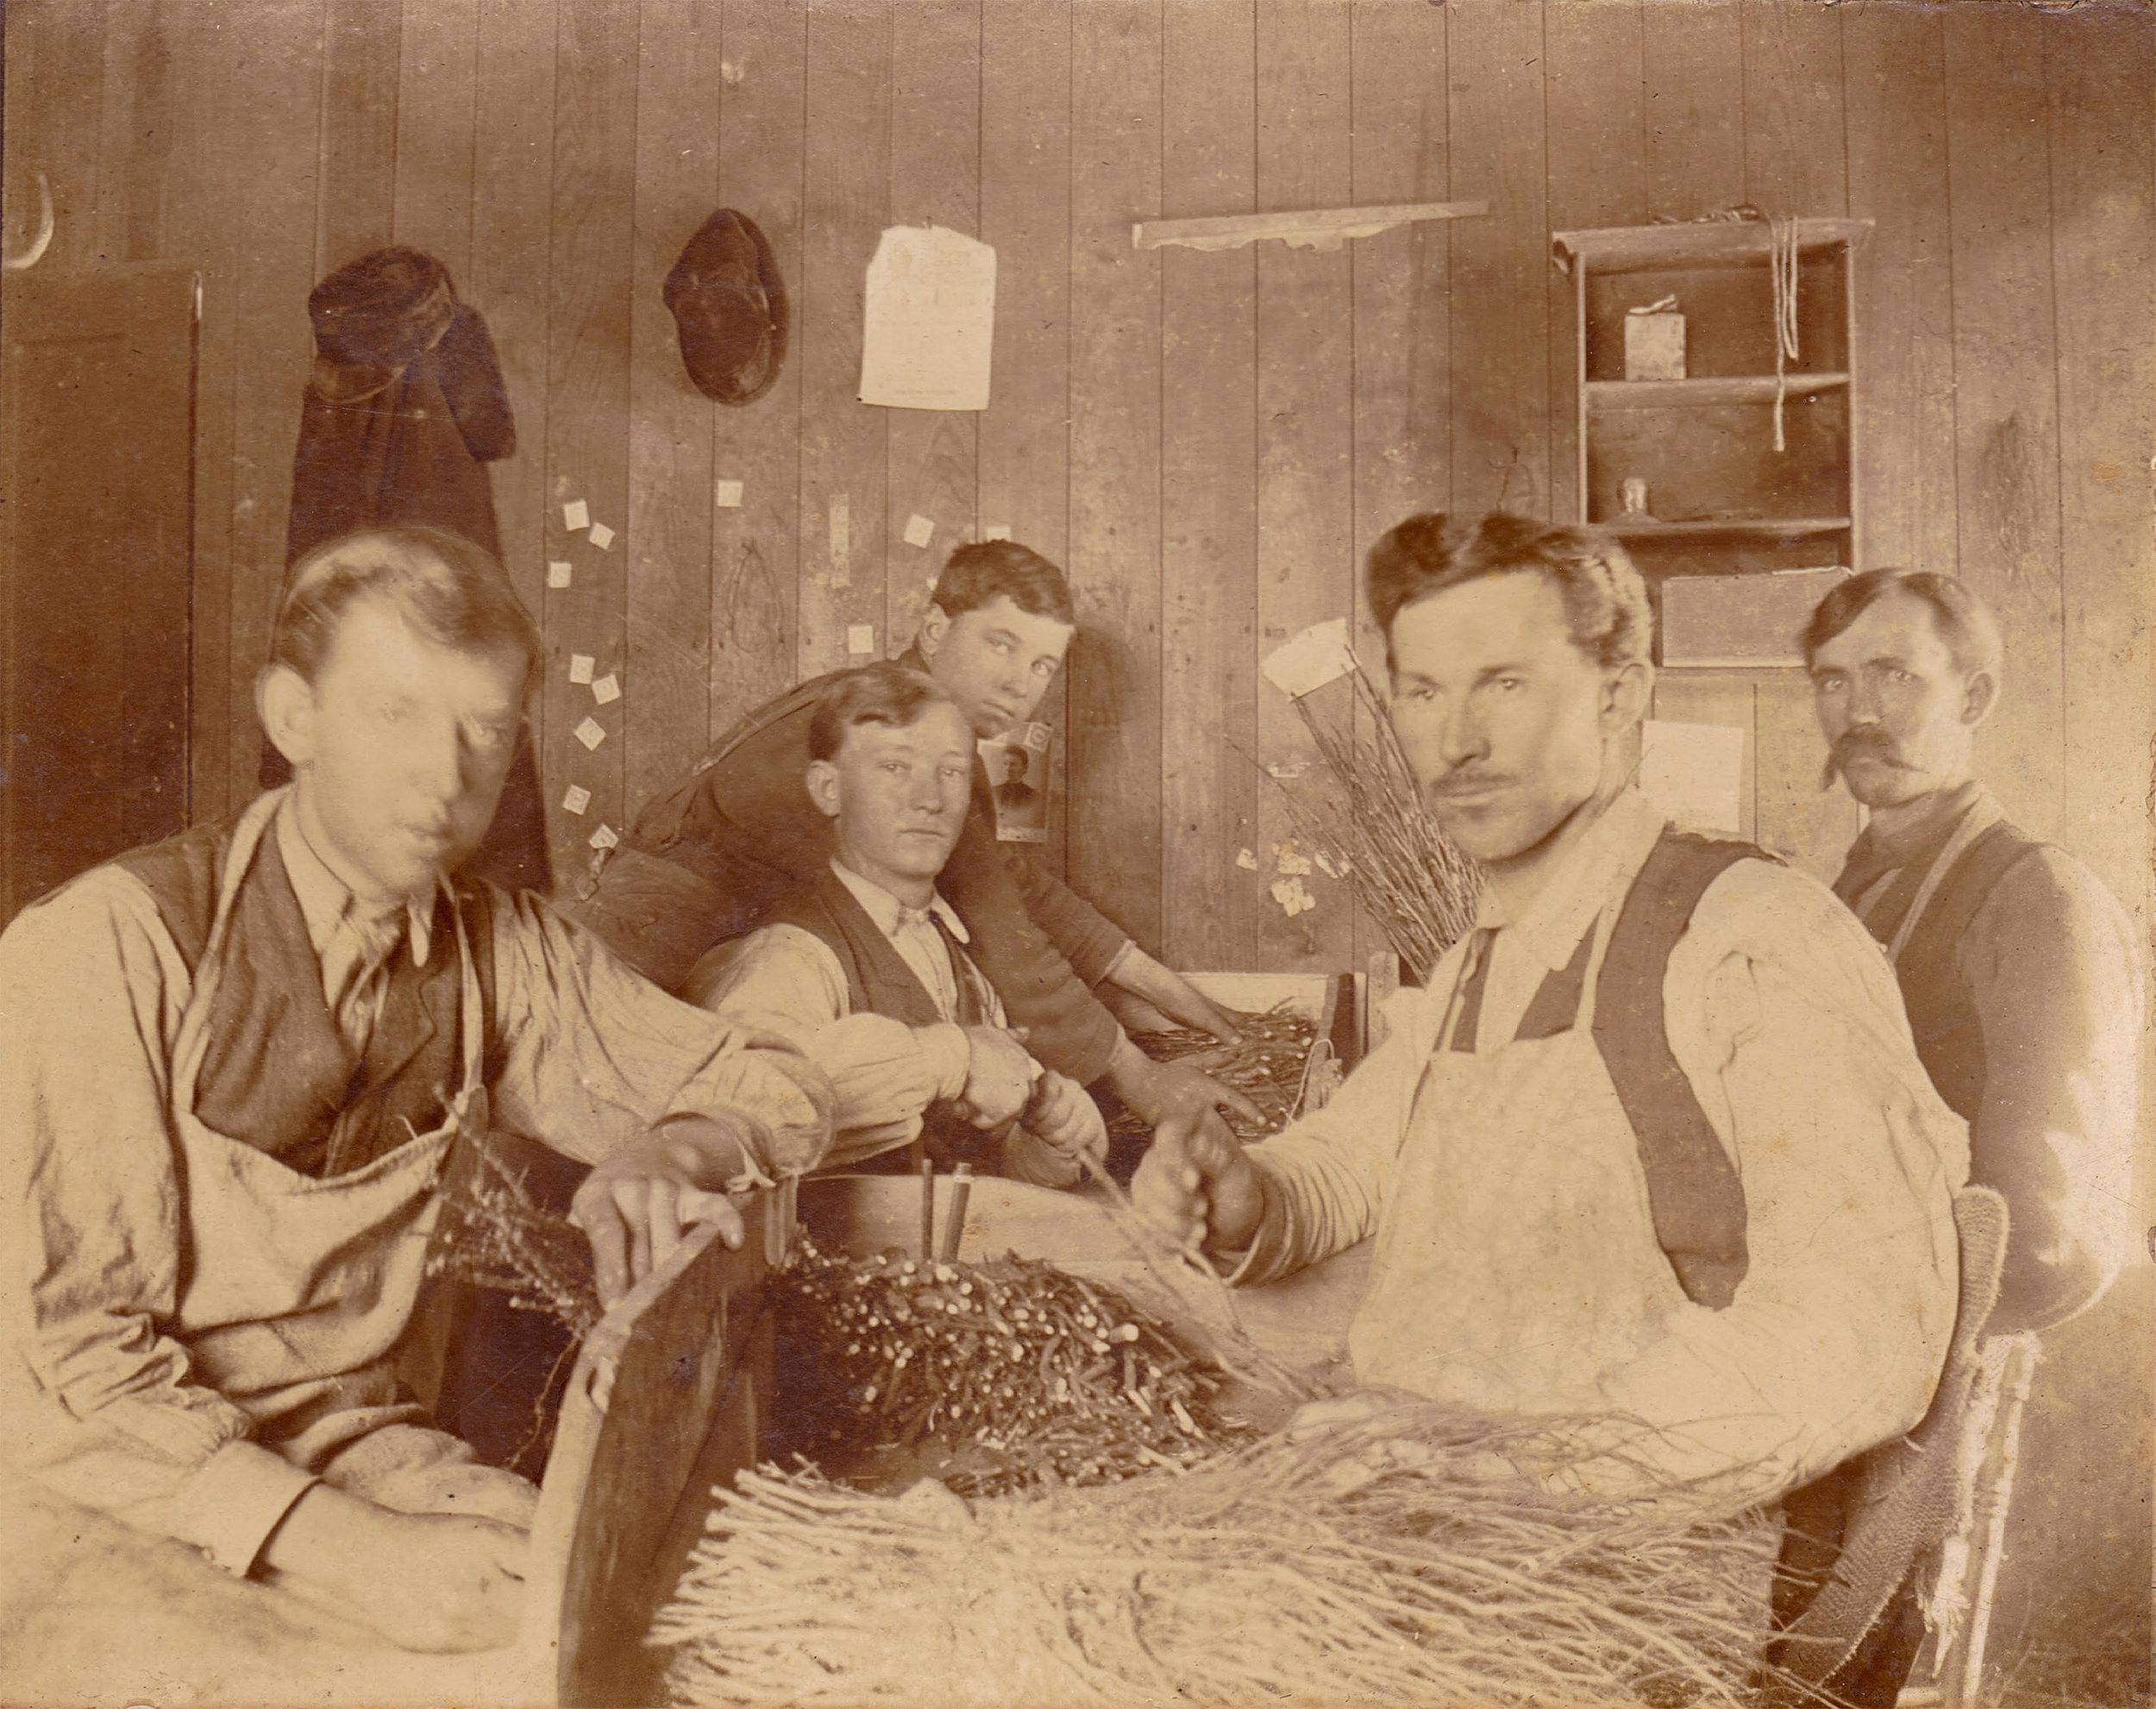 Above: Green Hill Nursery in Milton, Wisconsin circa 1875, showing men grafting apples. One of the men pictured, John Plumb, was the son of Joab Plumb who likely planted the first Plumb Cider Apple in Wisconsin.